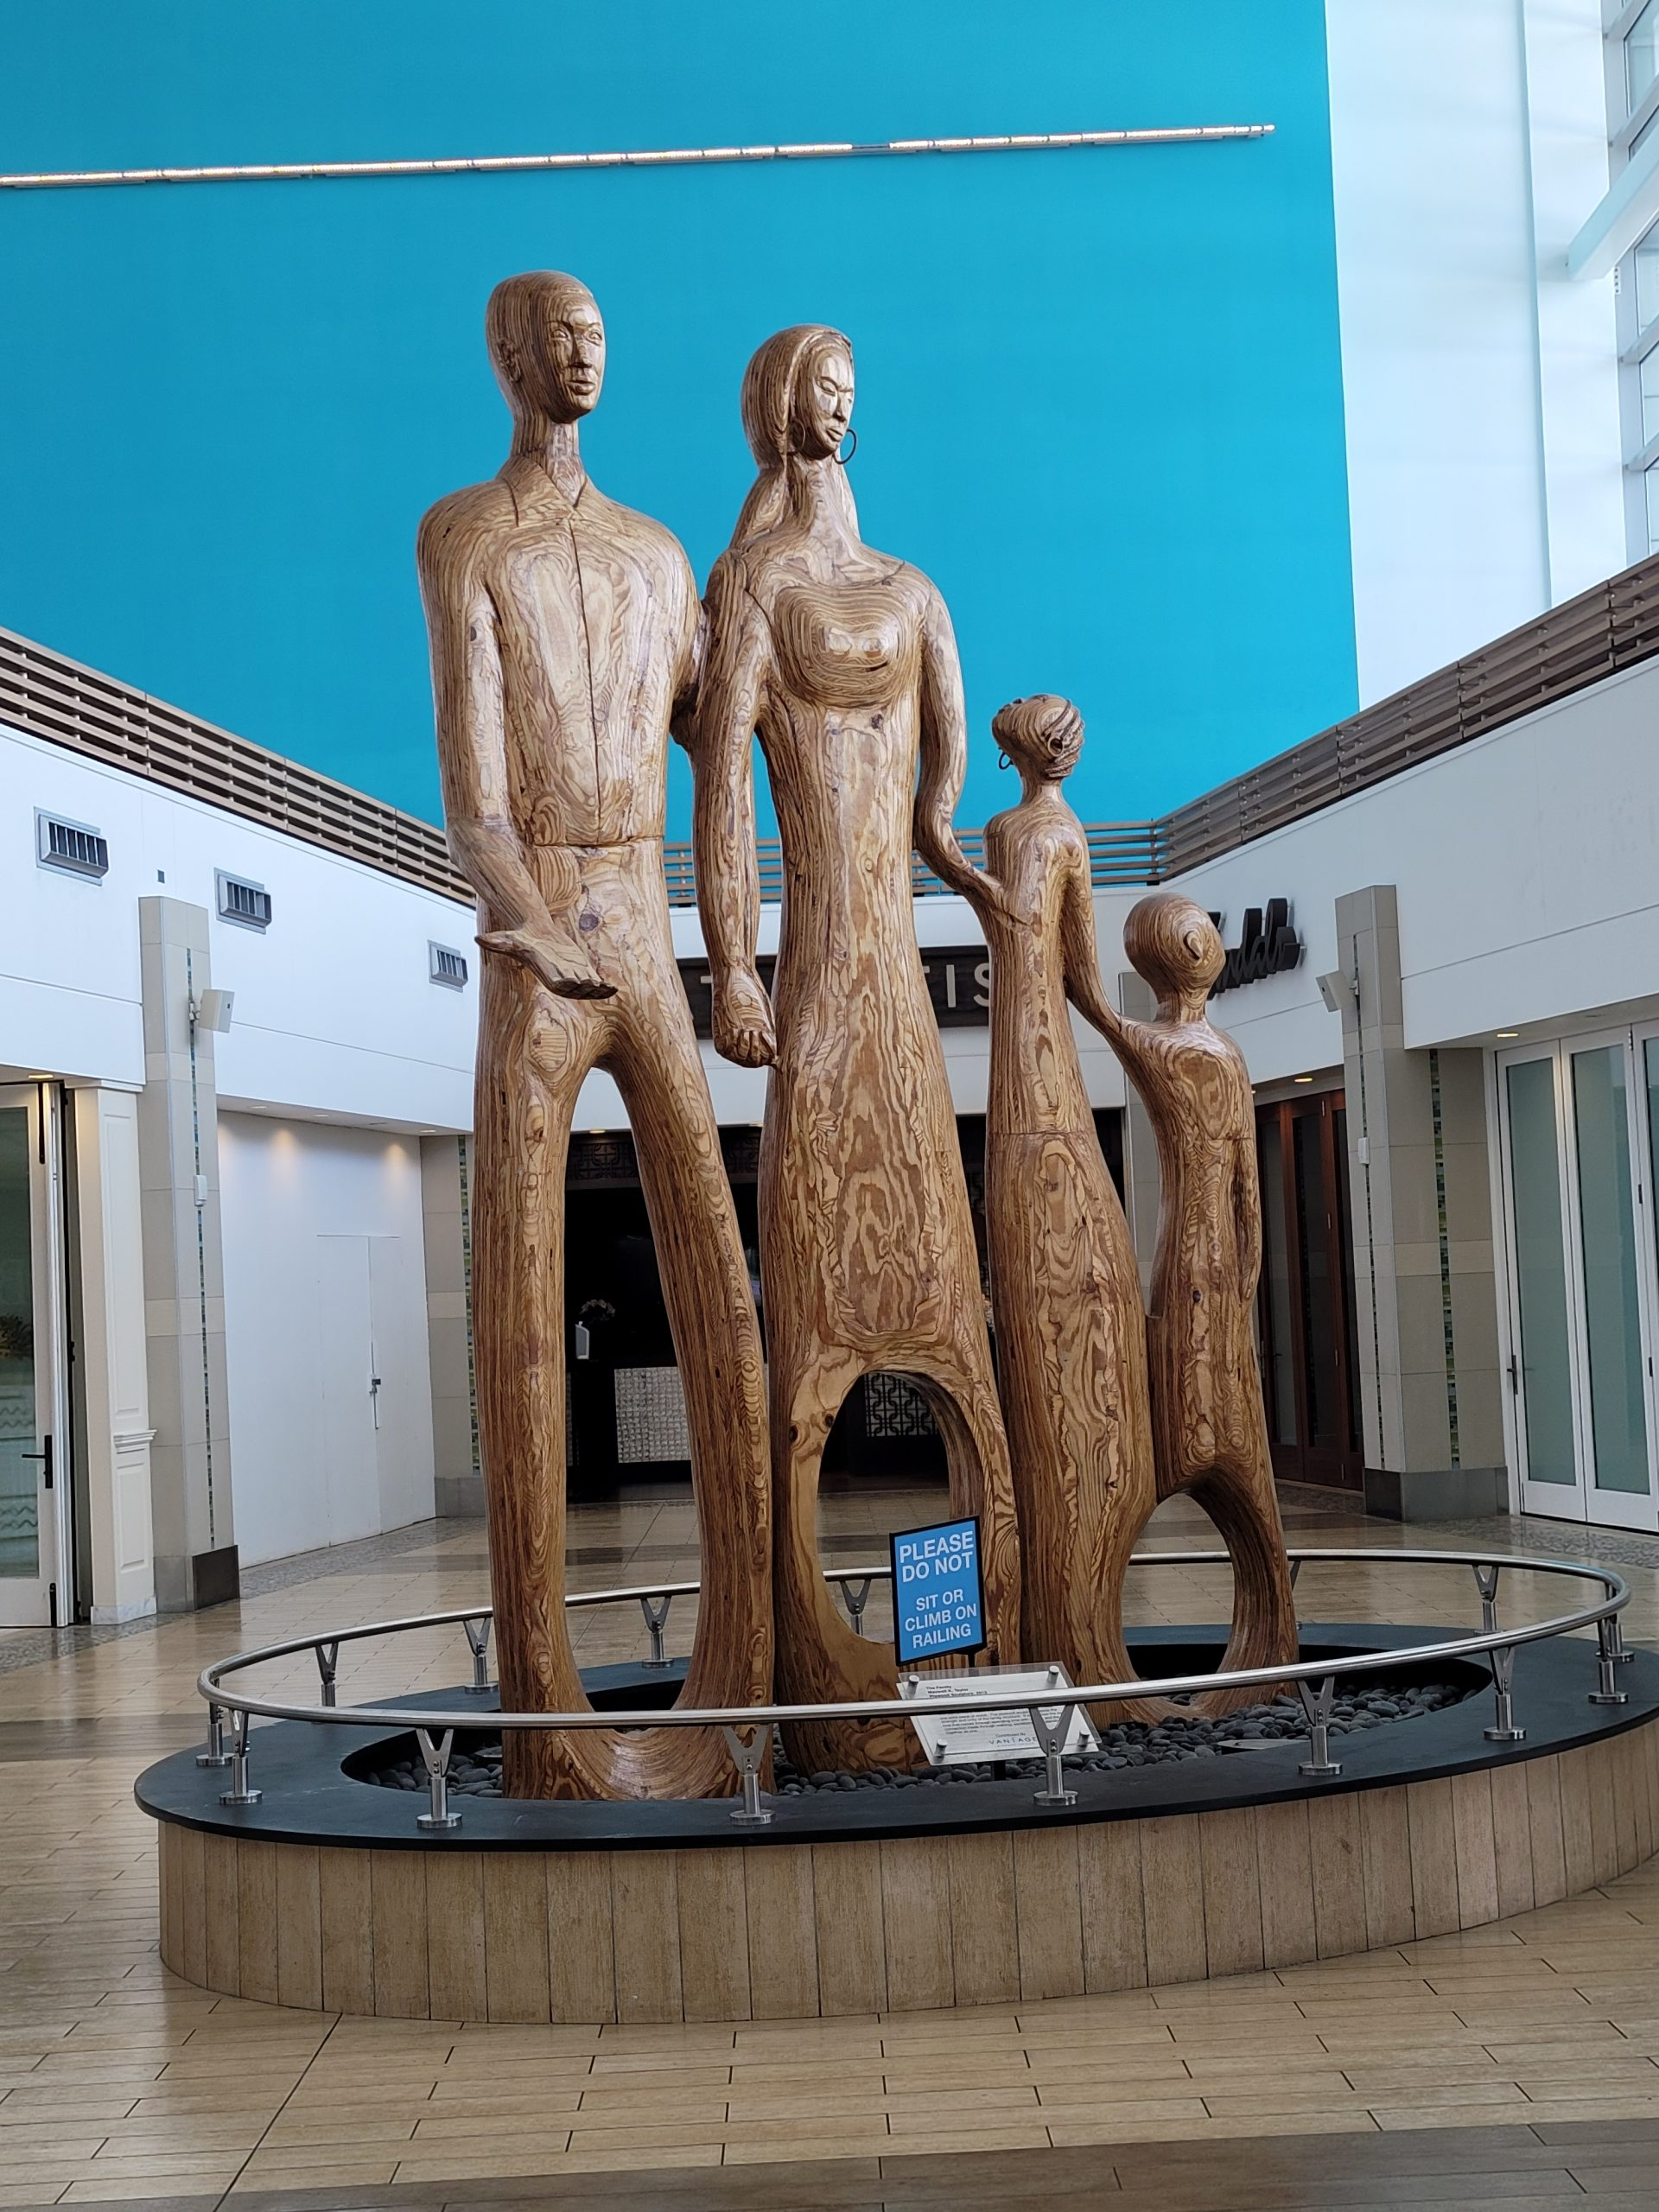 The Family wooden sculptor by Maxwell Taylor: represents the Bahamian family